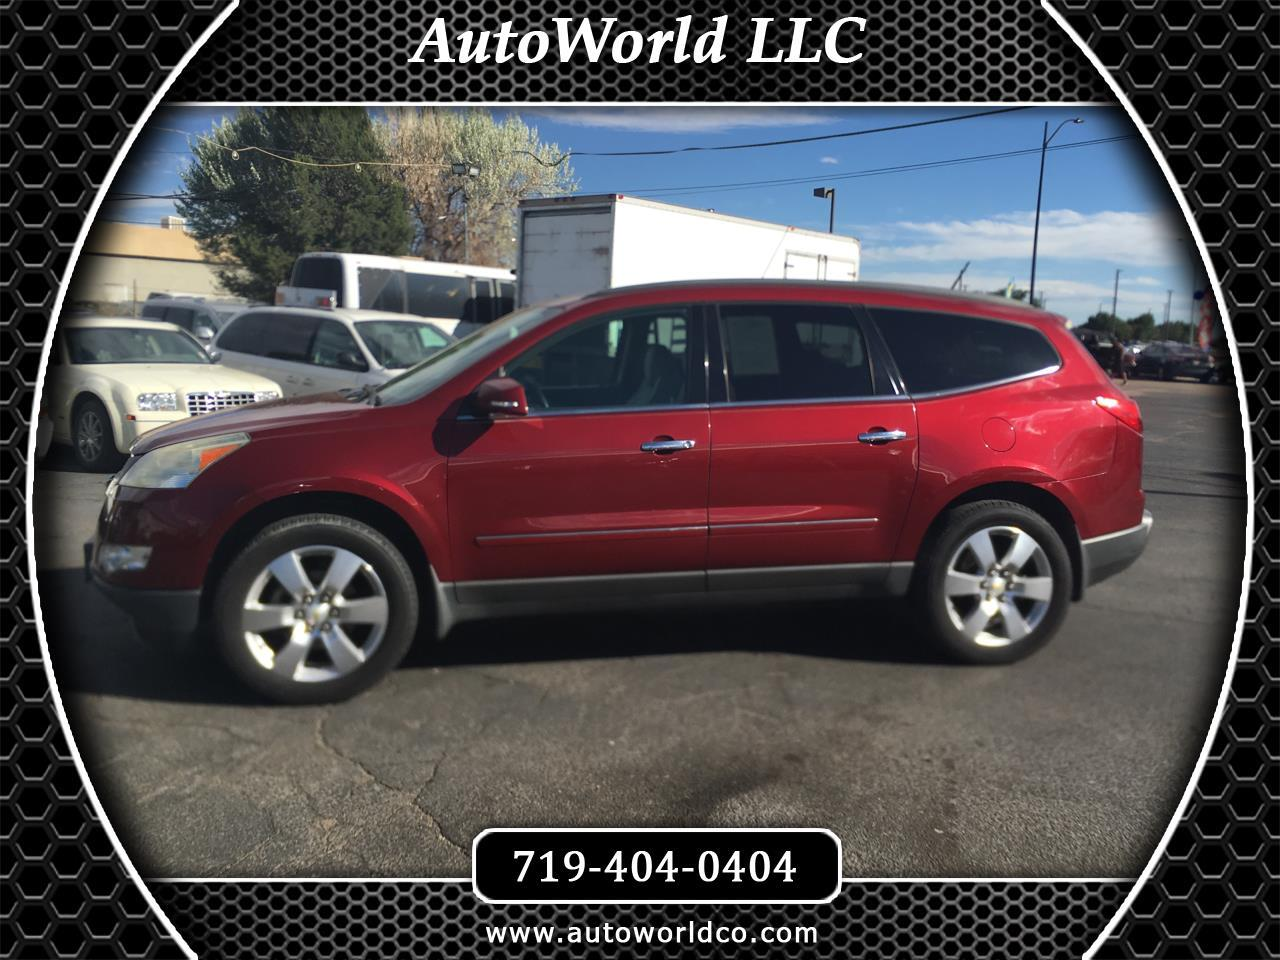 2010 Chevrolet Traverse AWD 4dr LTZ